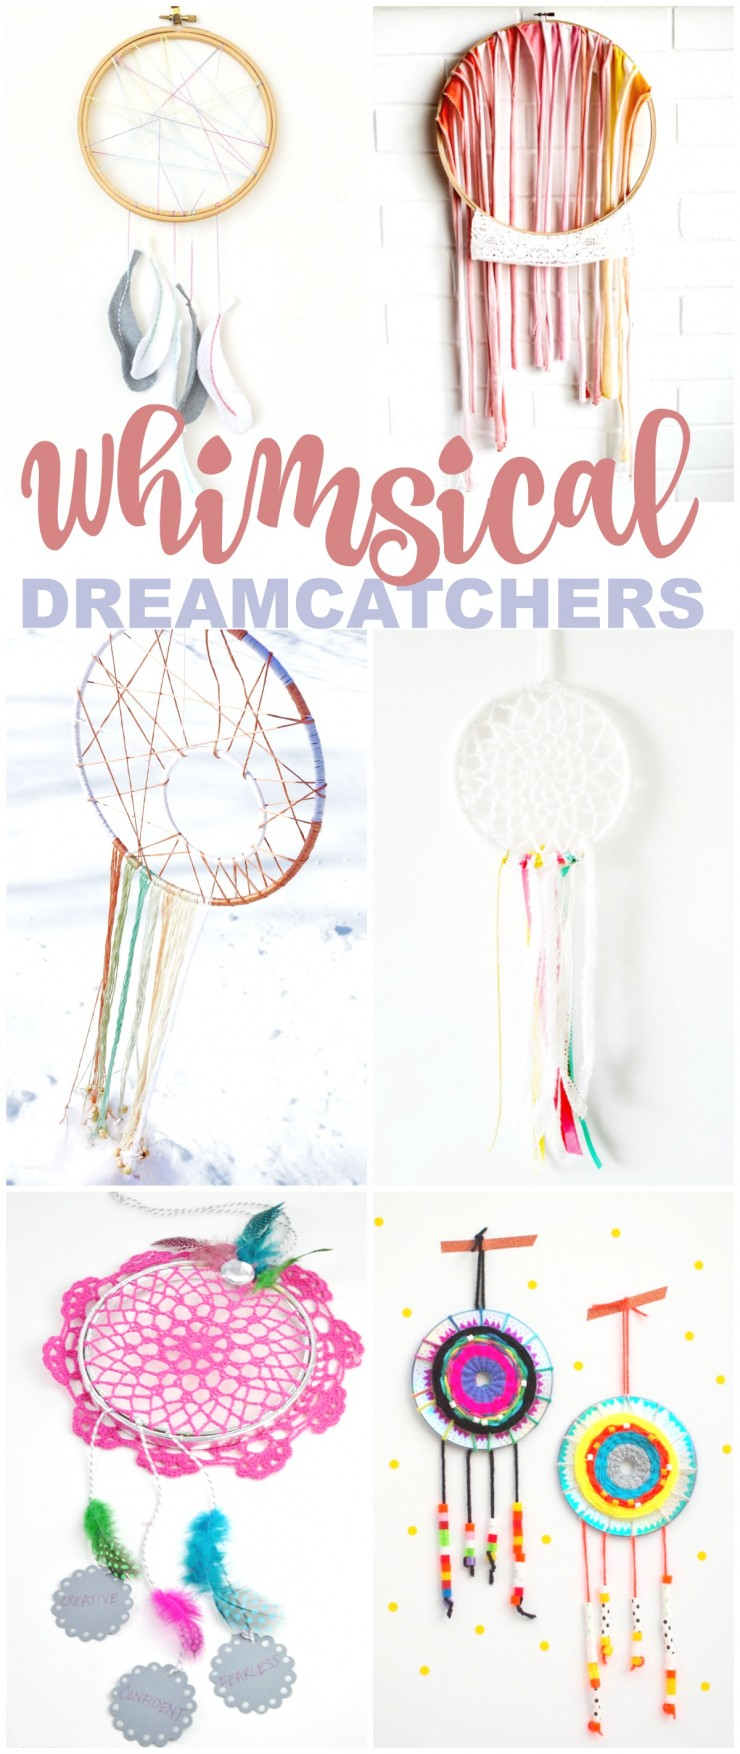 These 20 Whimsical DIY Dreamcatchers are gorgeous! They make for gorgeous wall décor or craft with kids to help them keep nightmares at bay.